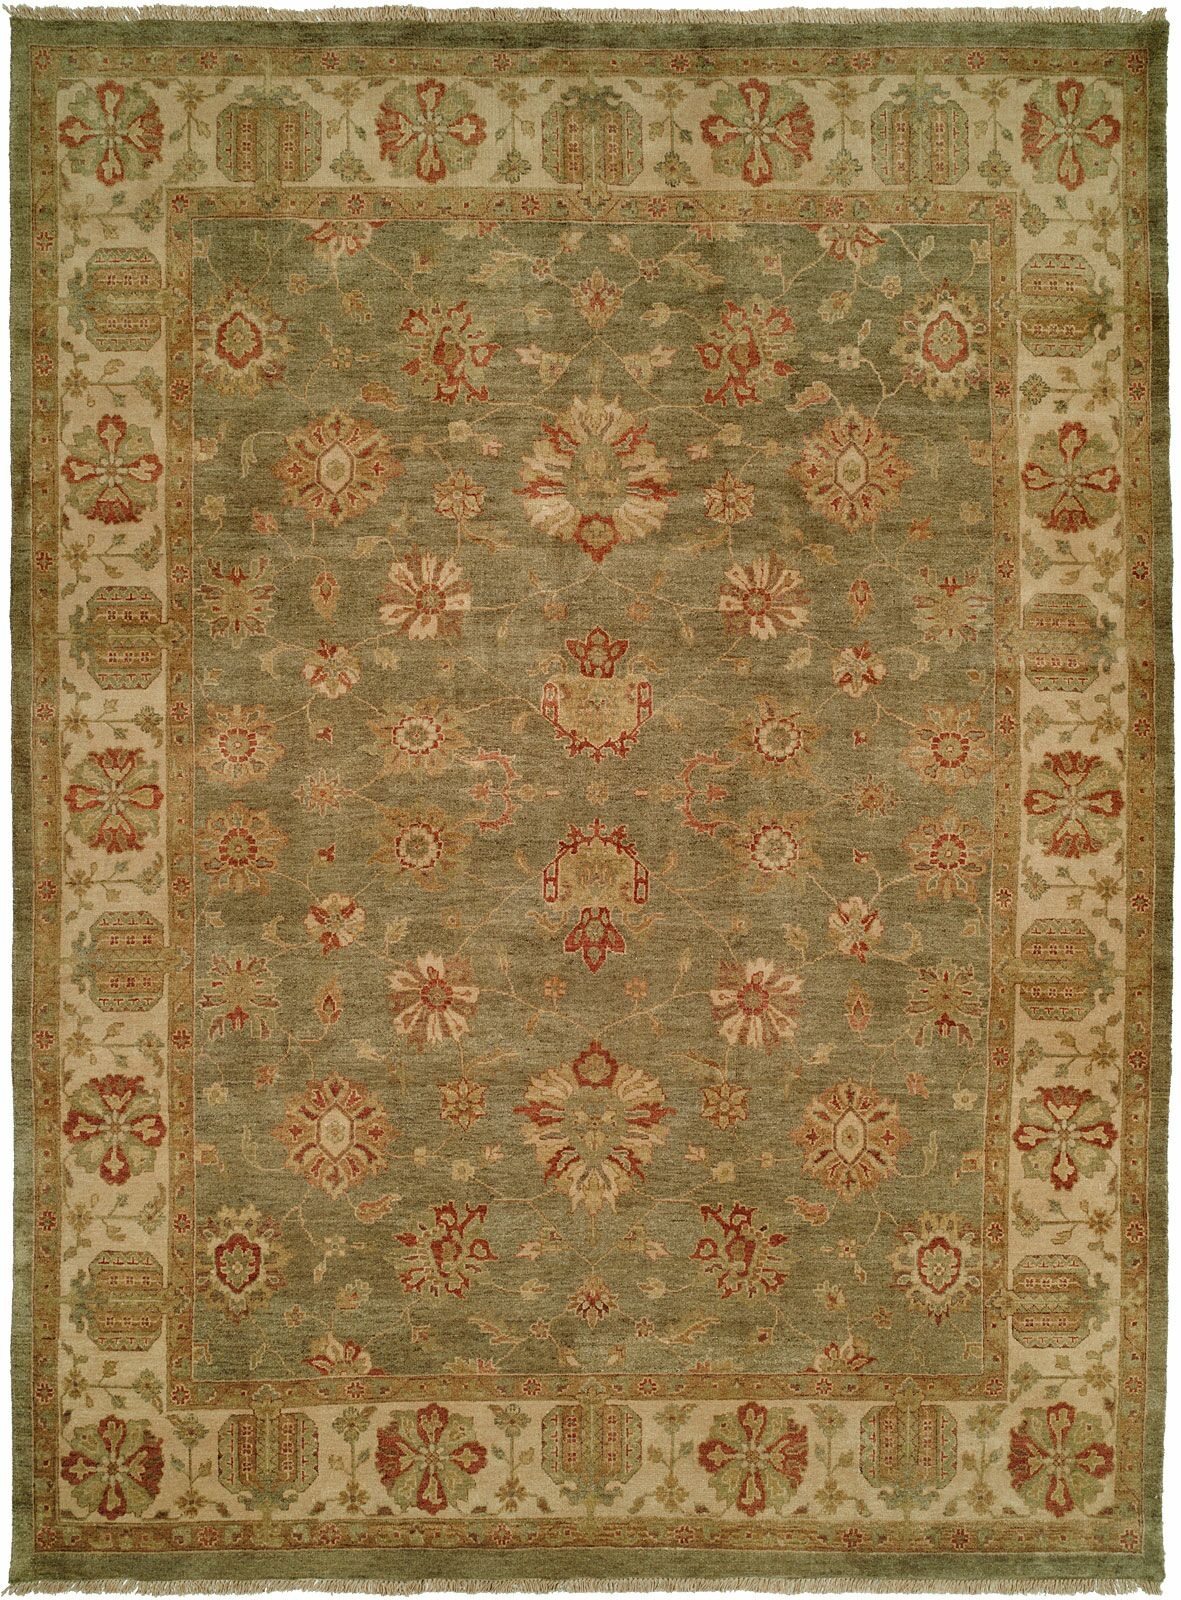 Buenaventura Hand-Knotted Green/Ivory Area Rug Rug Size: Rectangle 6' x 9'